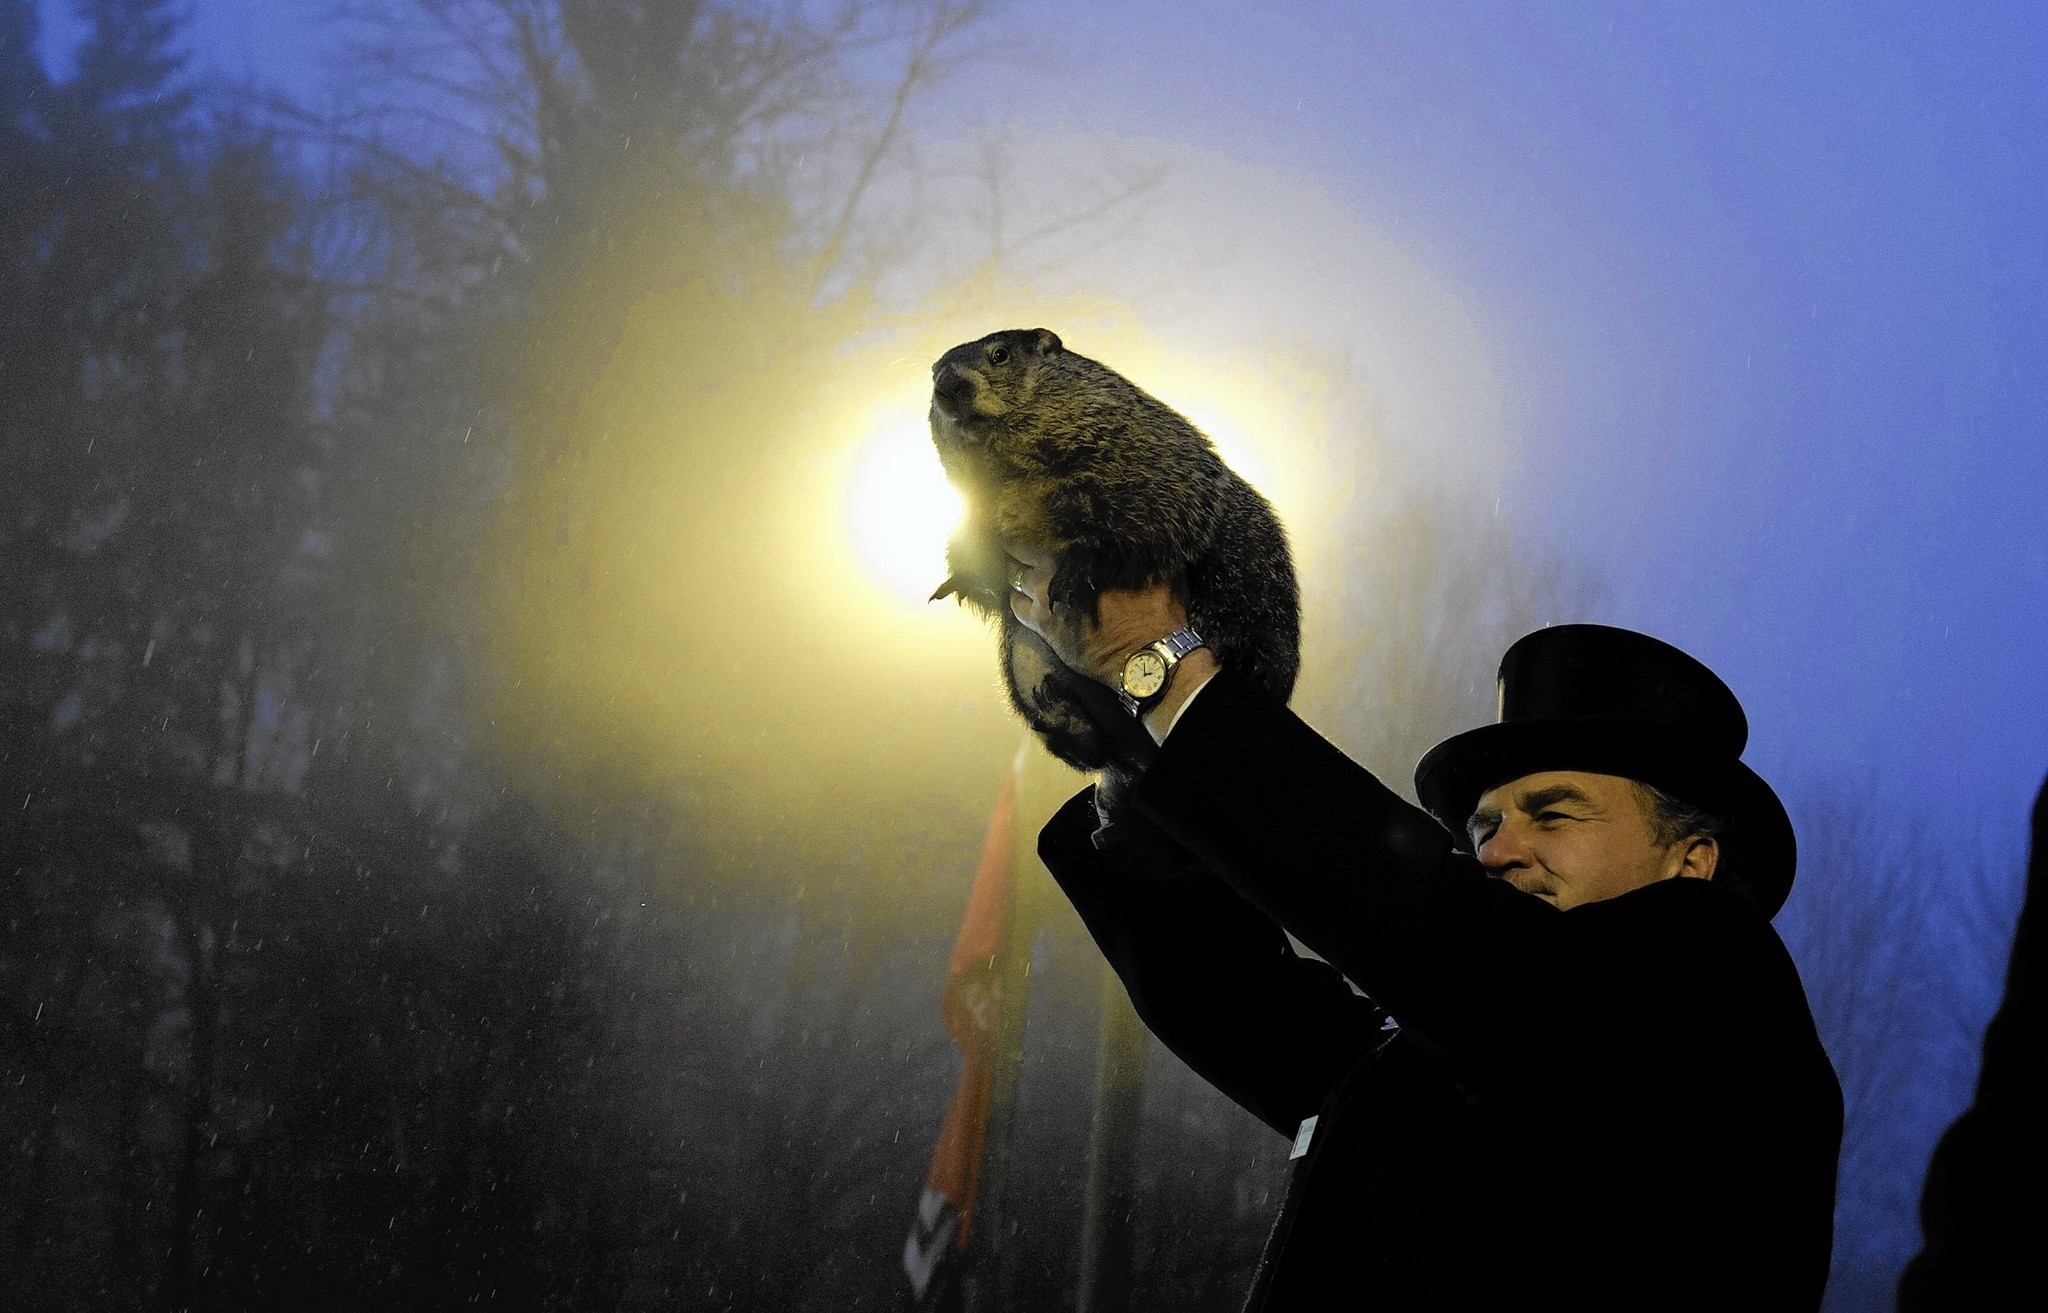 biologist sees groundhog day as a celebration of science not biologist sees groundhog day as a celebration of science not superstition baltimore sun